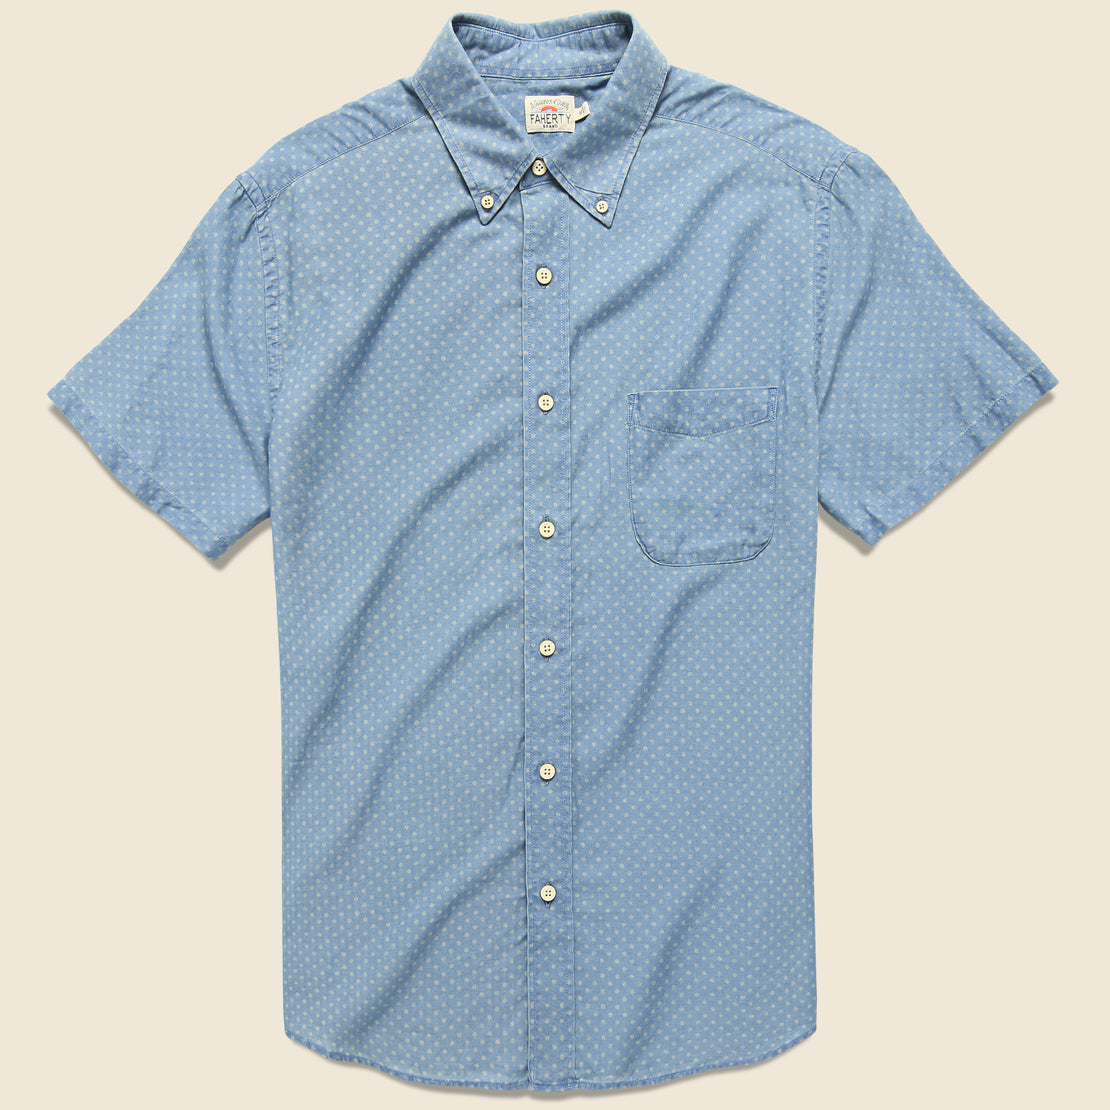 Faherty Pacific Shirt - Indigo Sunburst